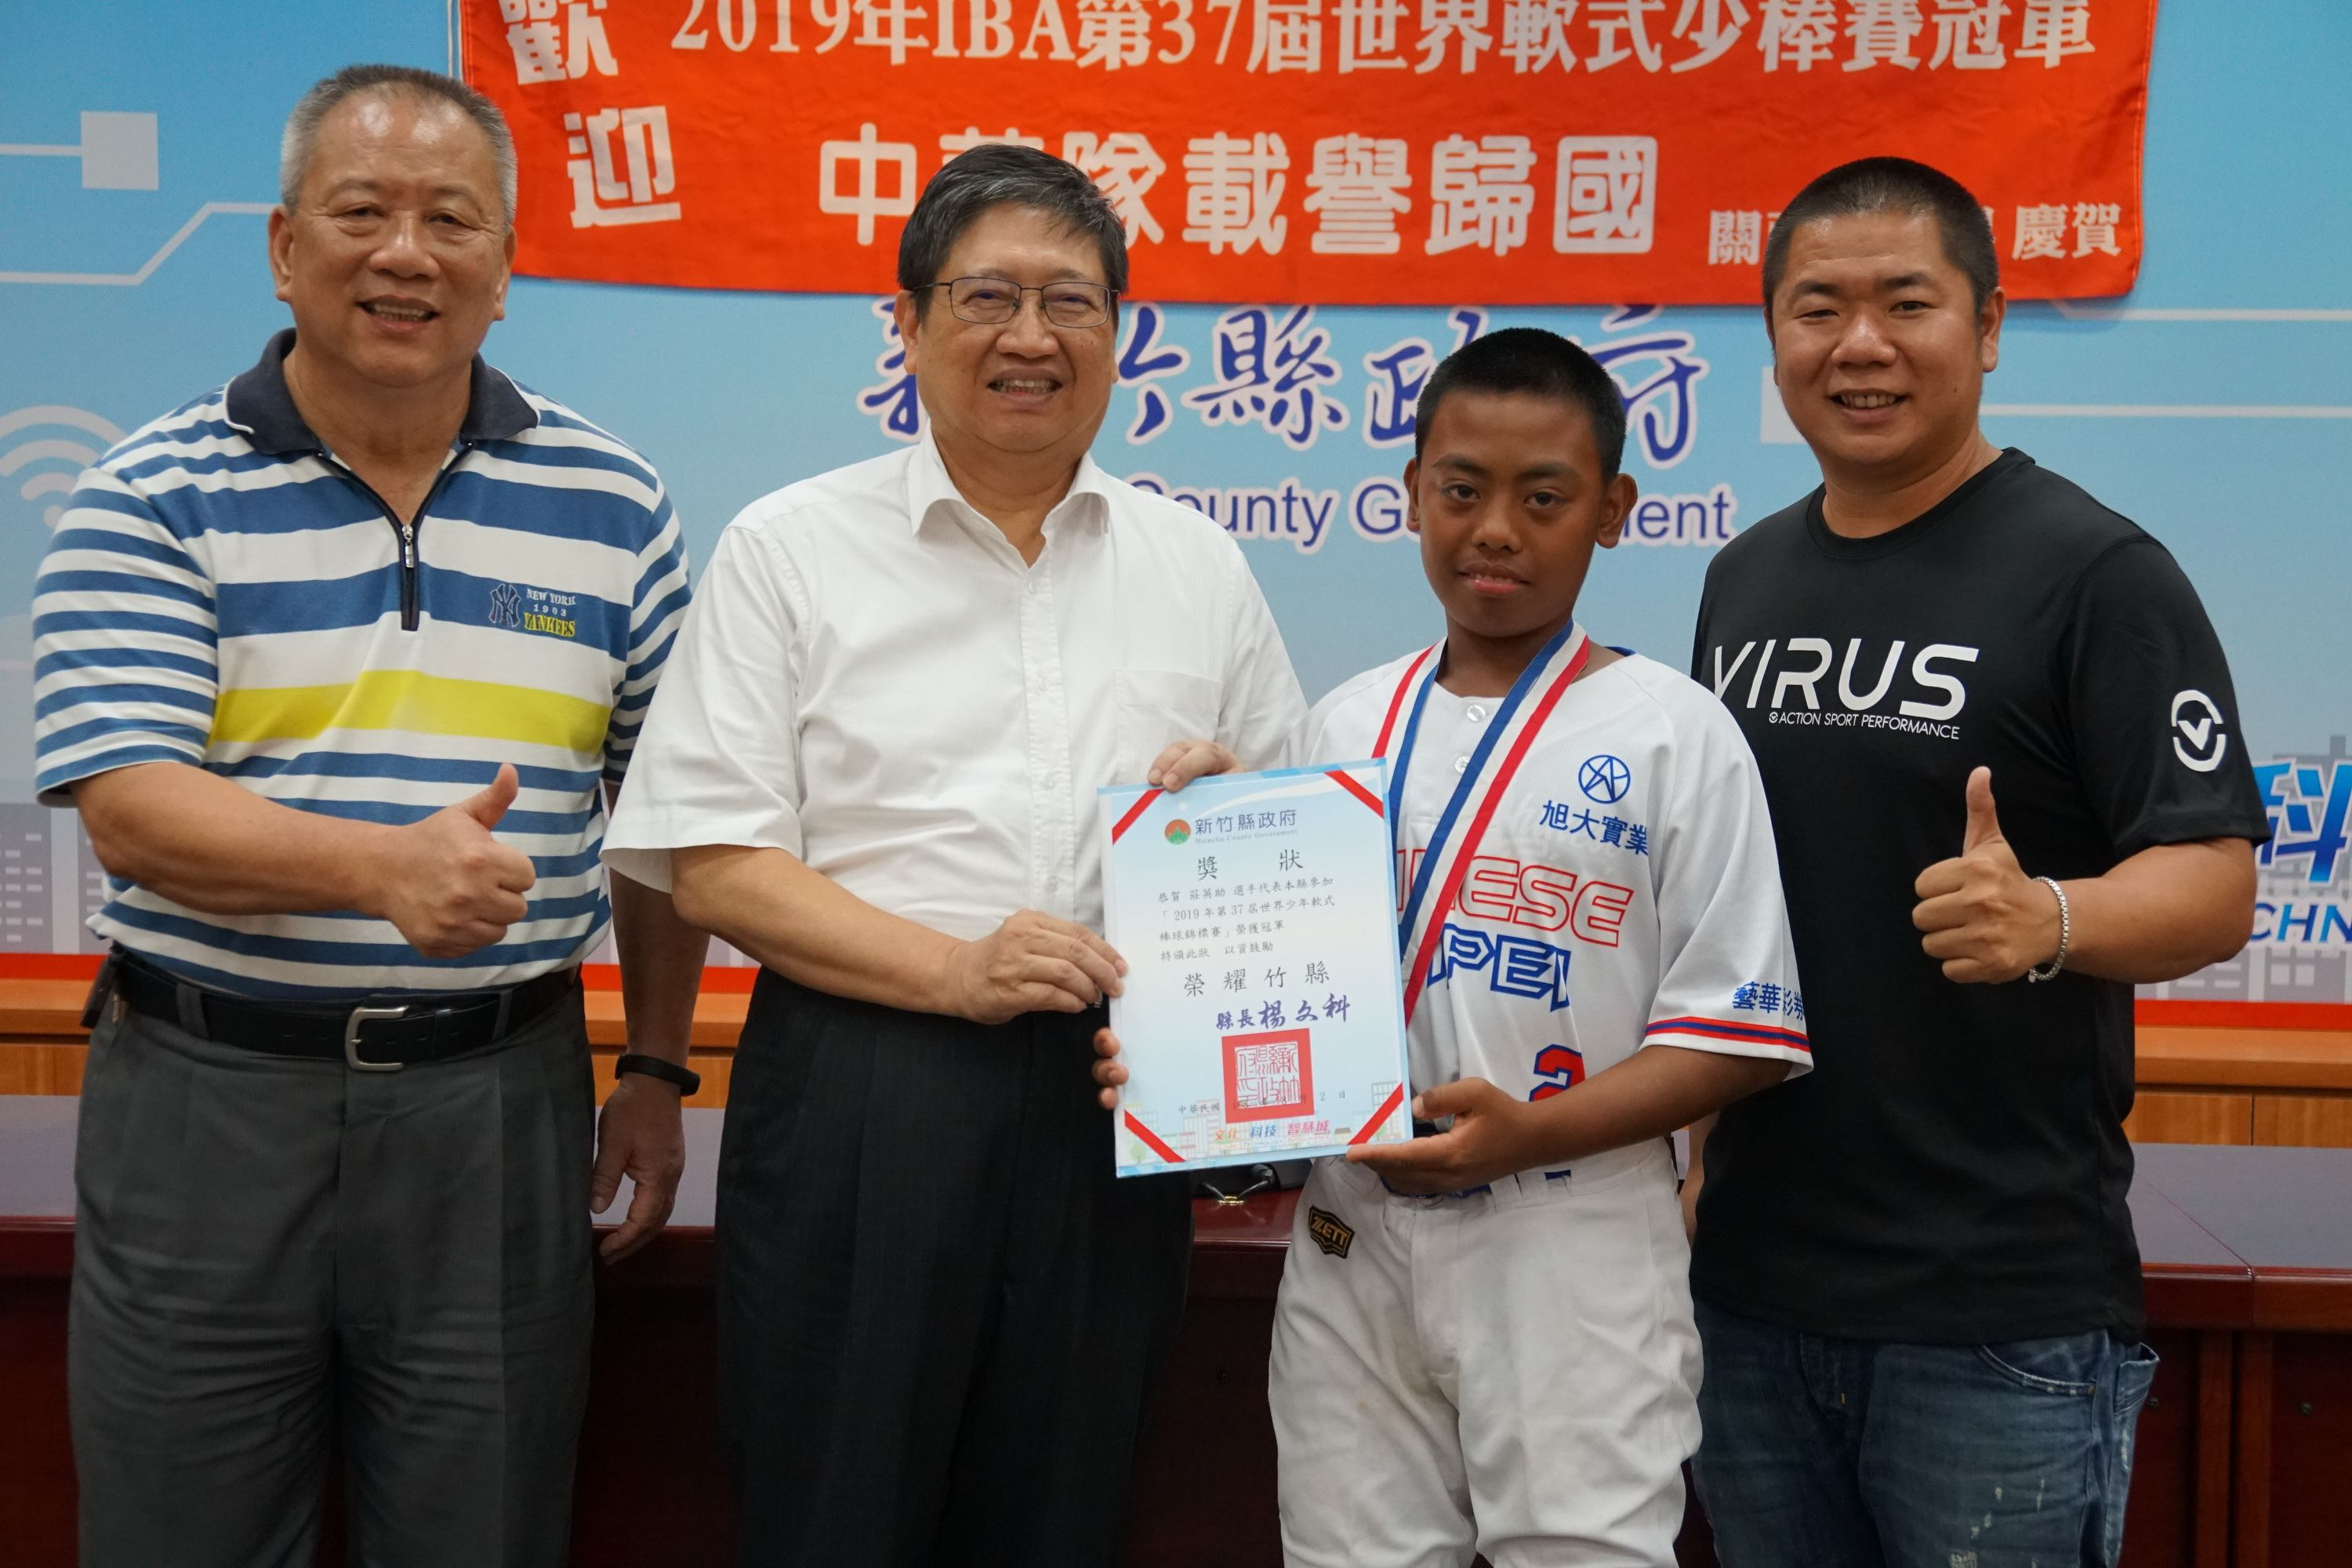 Guanxi Elementary School Baseball Team commended by Magistrate Yang for claiming IBA-Boys baseball championship